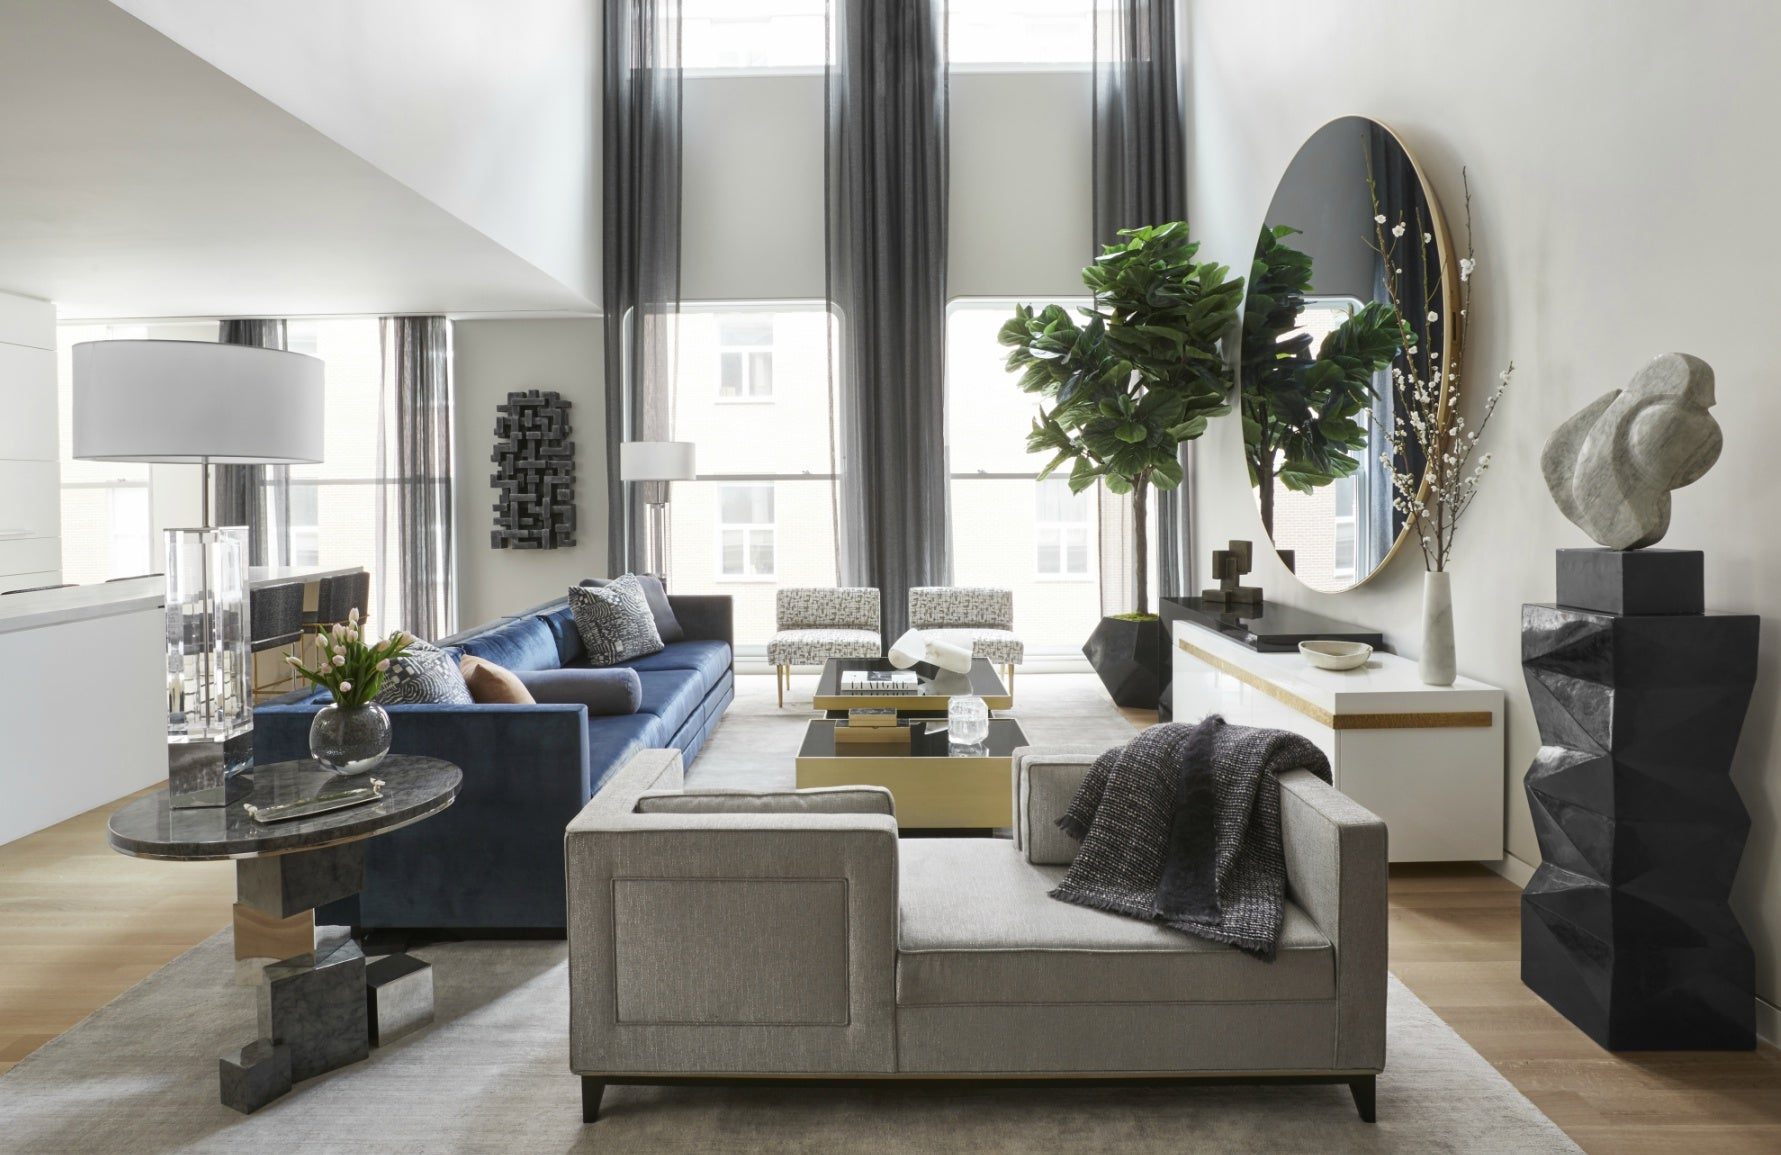 Spring Living Room Ideas | Rearrange Your Furniture | Interior design by Carlyle Design | LuxDeco.com